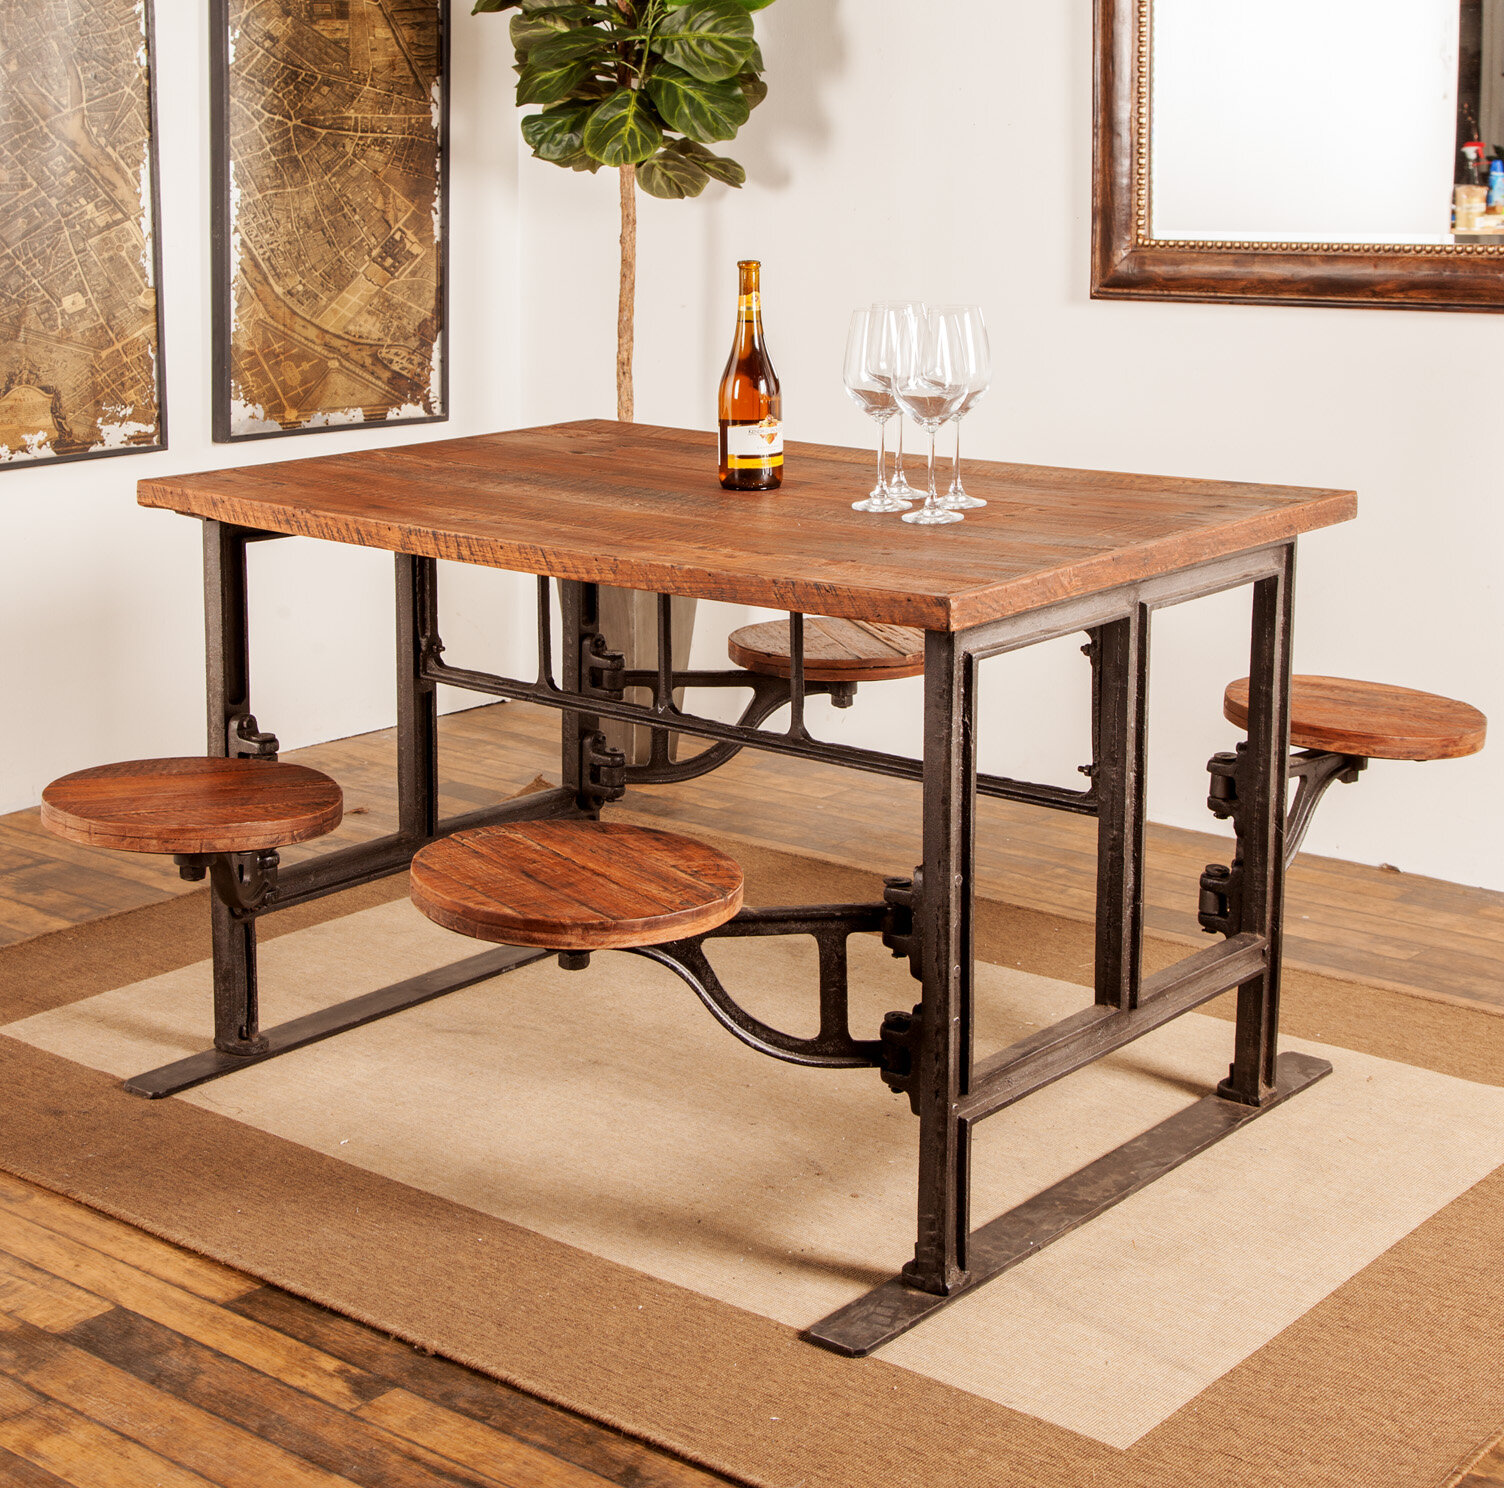 17 Stories Emestina Rustic Dining Table